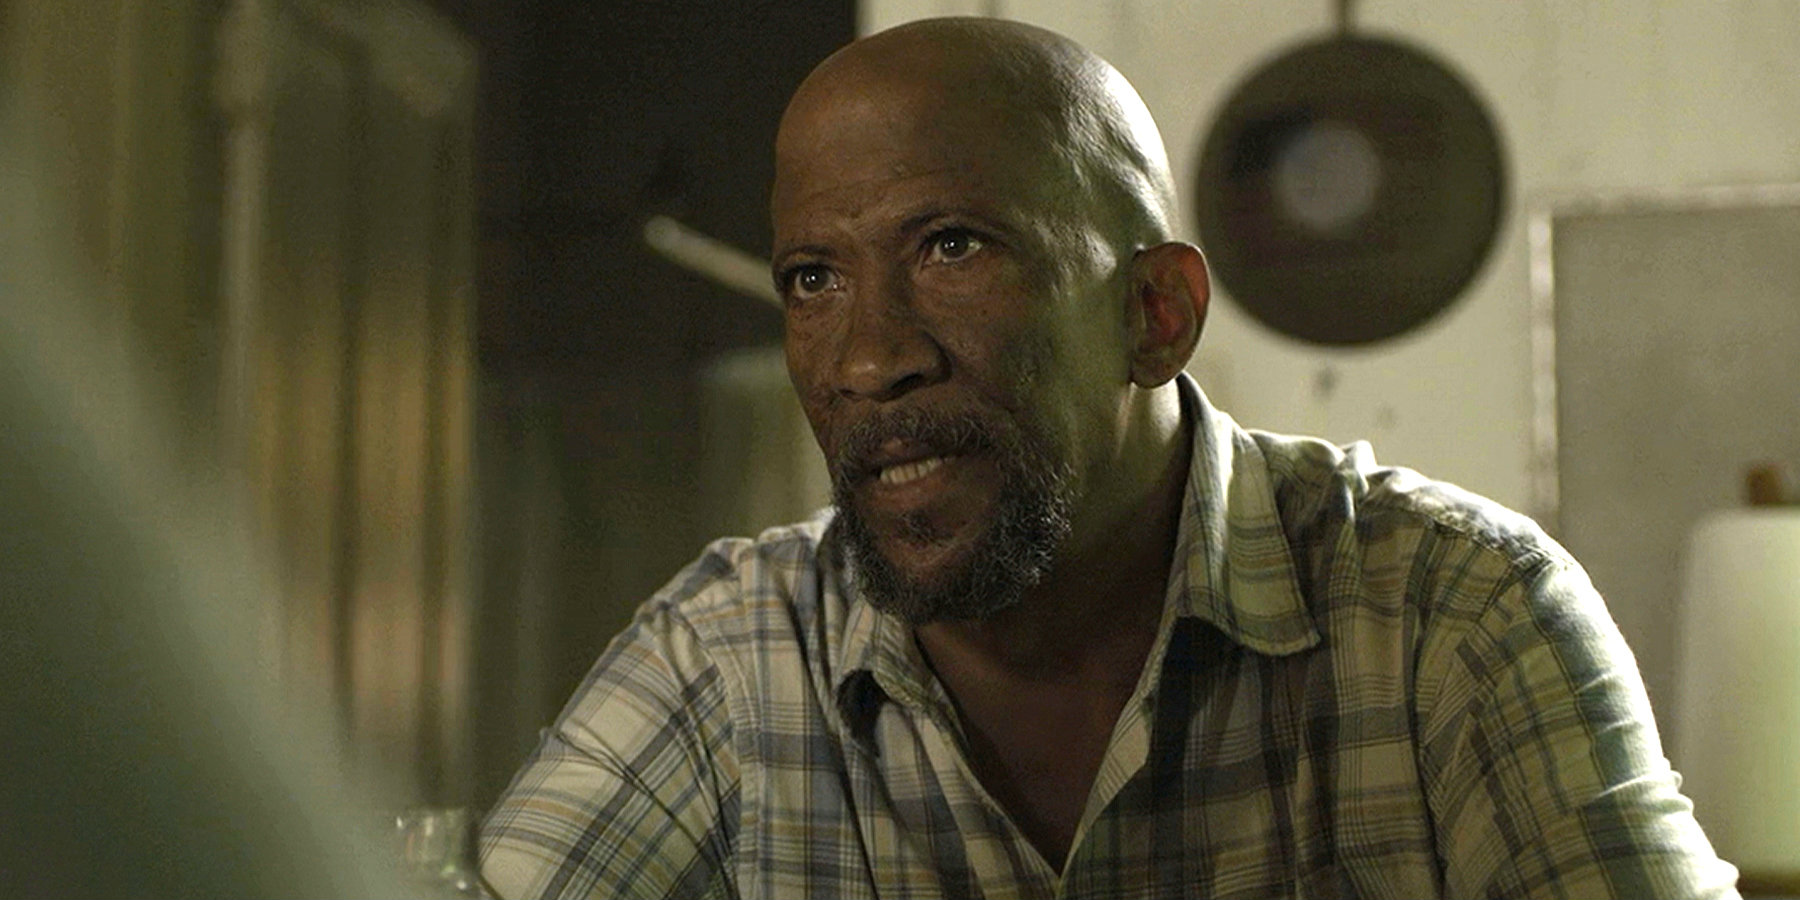 House of Cards, The Wire Actor Reg E. Cathey Passes Away At 59